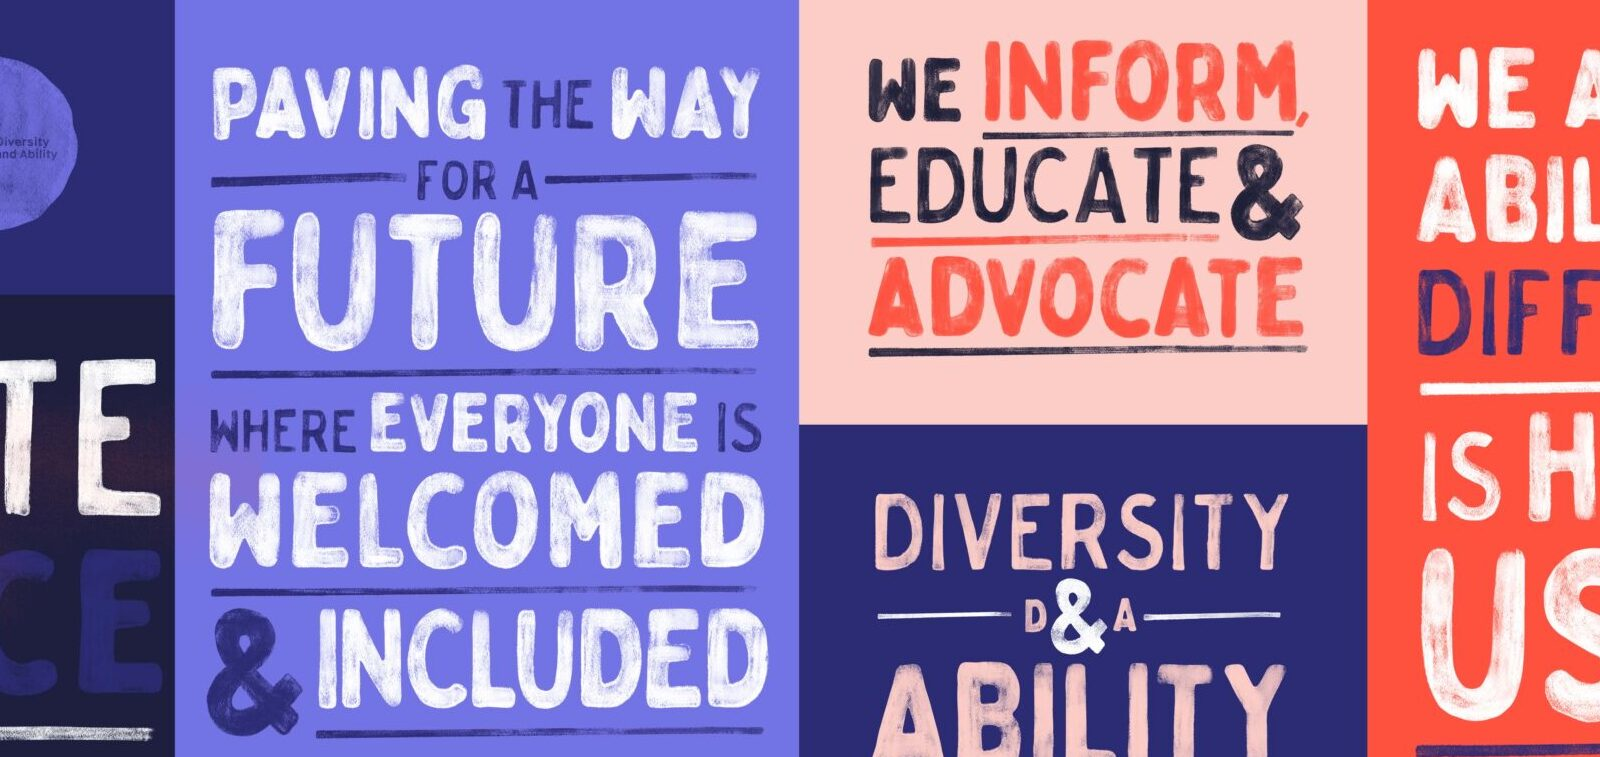 Diversity and Ability footer icons, showing d and a logo and slogan, 'we inform, educate and advocate'.